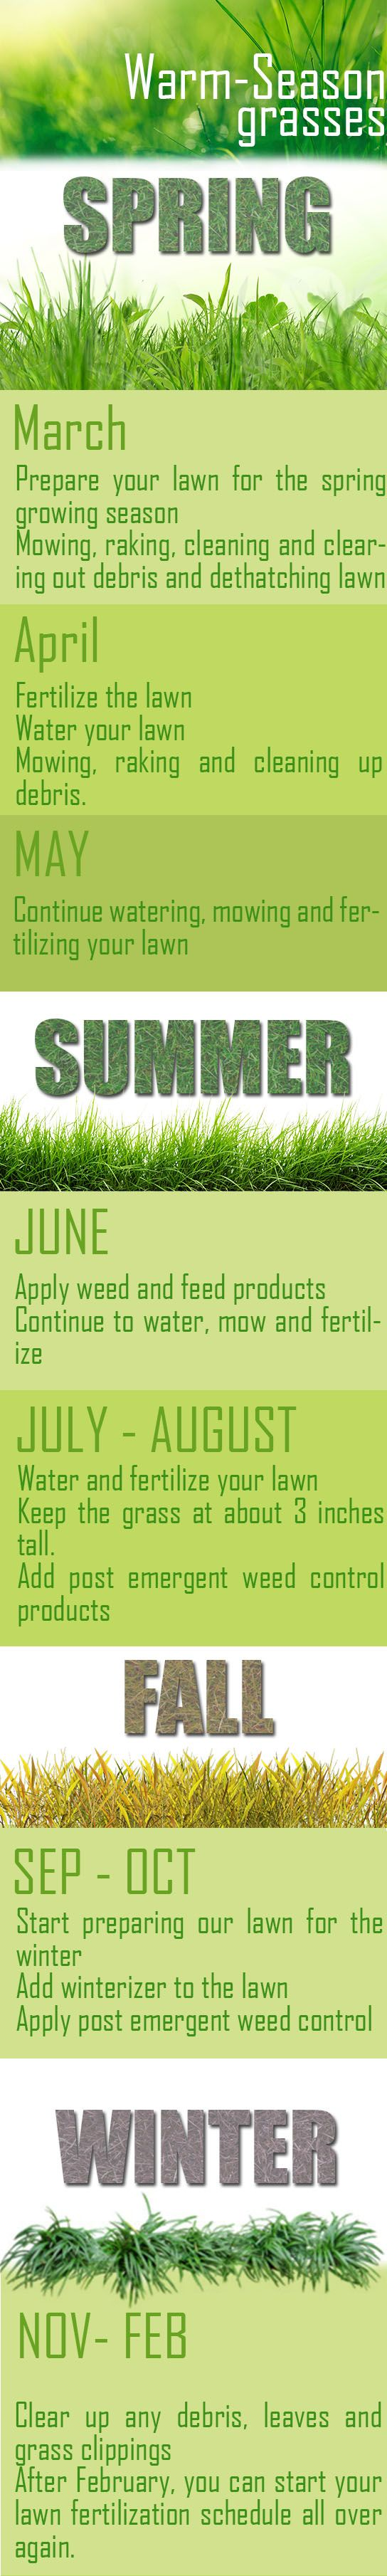 Lawn fertilizing tips for warm season grasses | http://www.goldensunlandscapingsvc.com/blog/lawn-fertilizing-schedule/